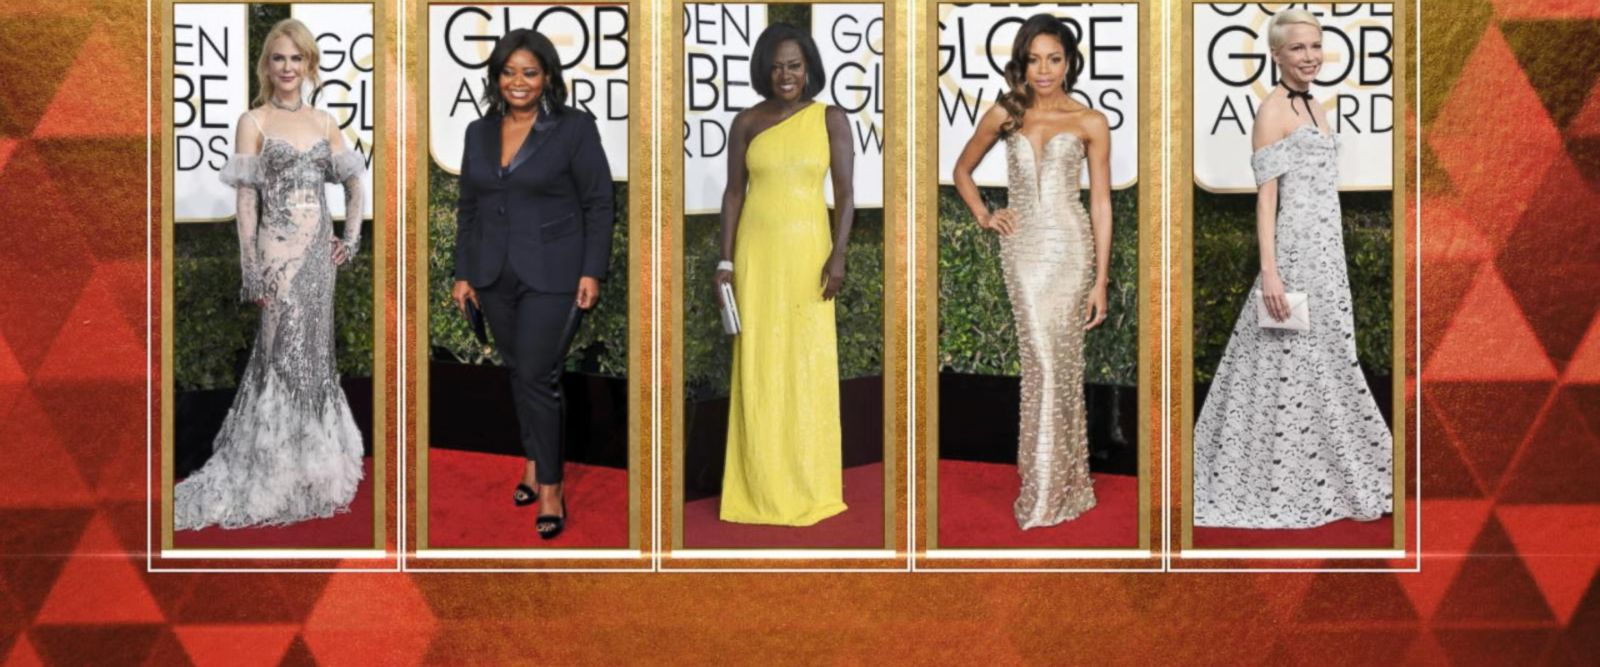 VIDEO: What will the stars wear at the Oscars?